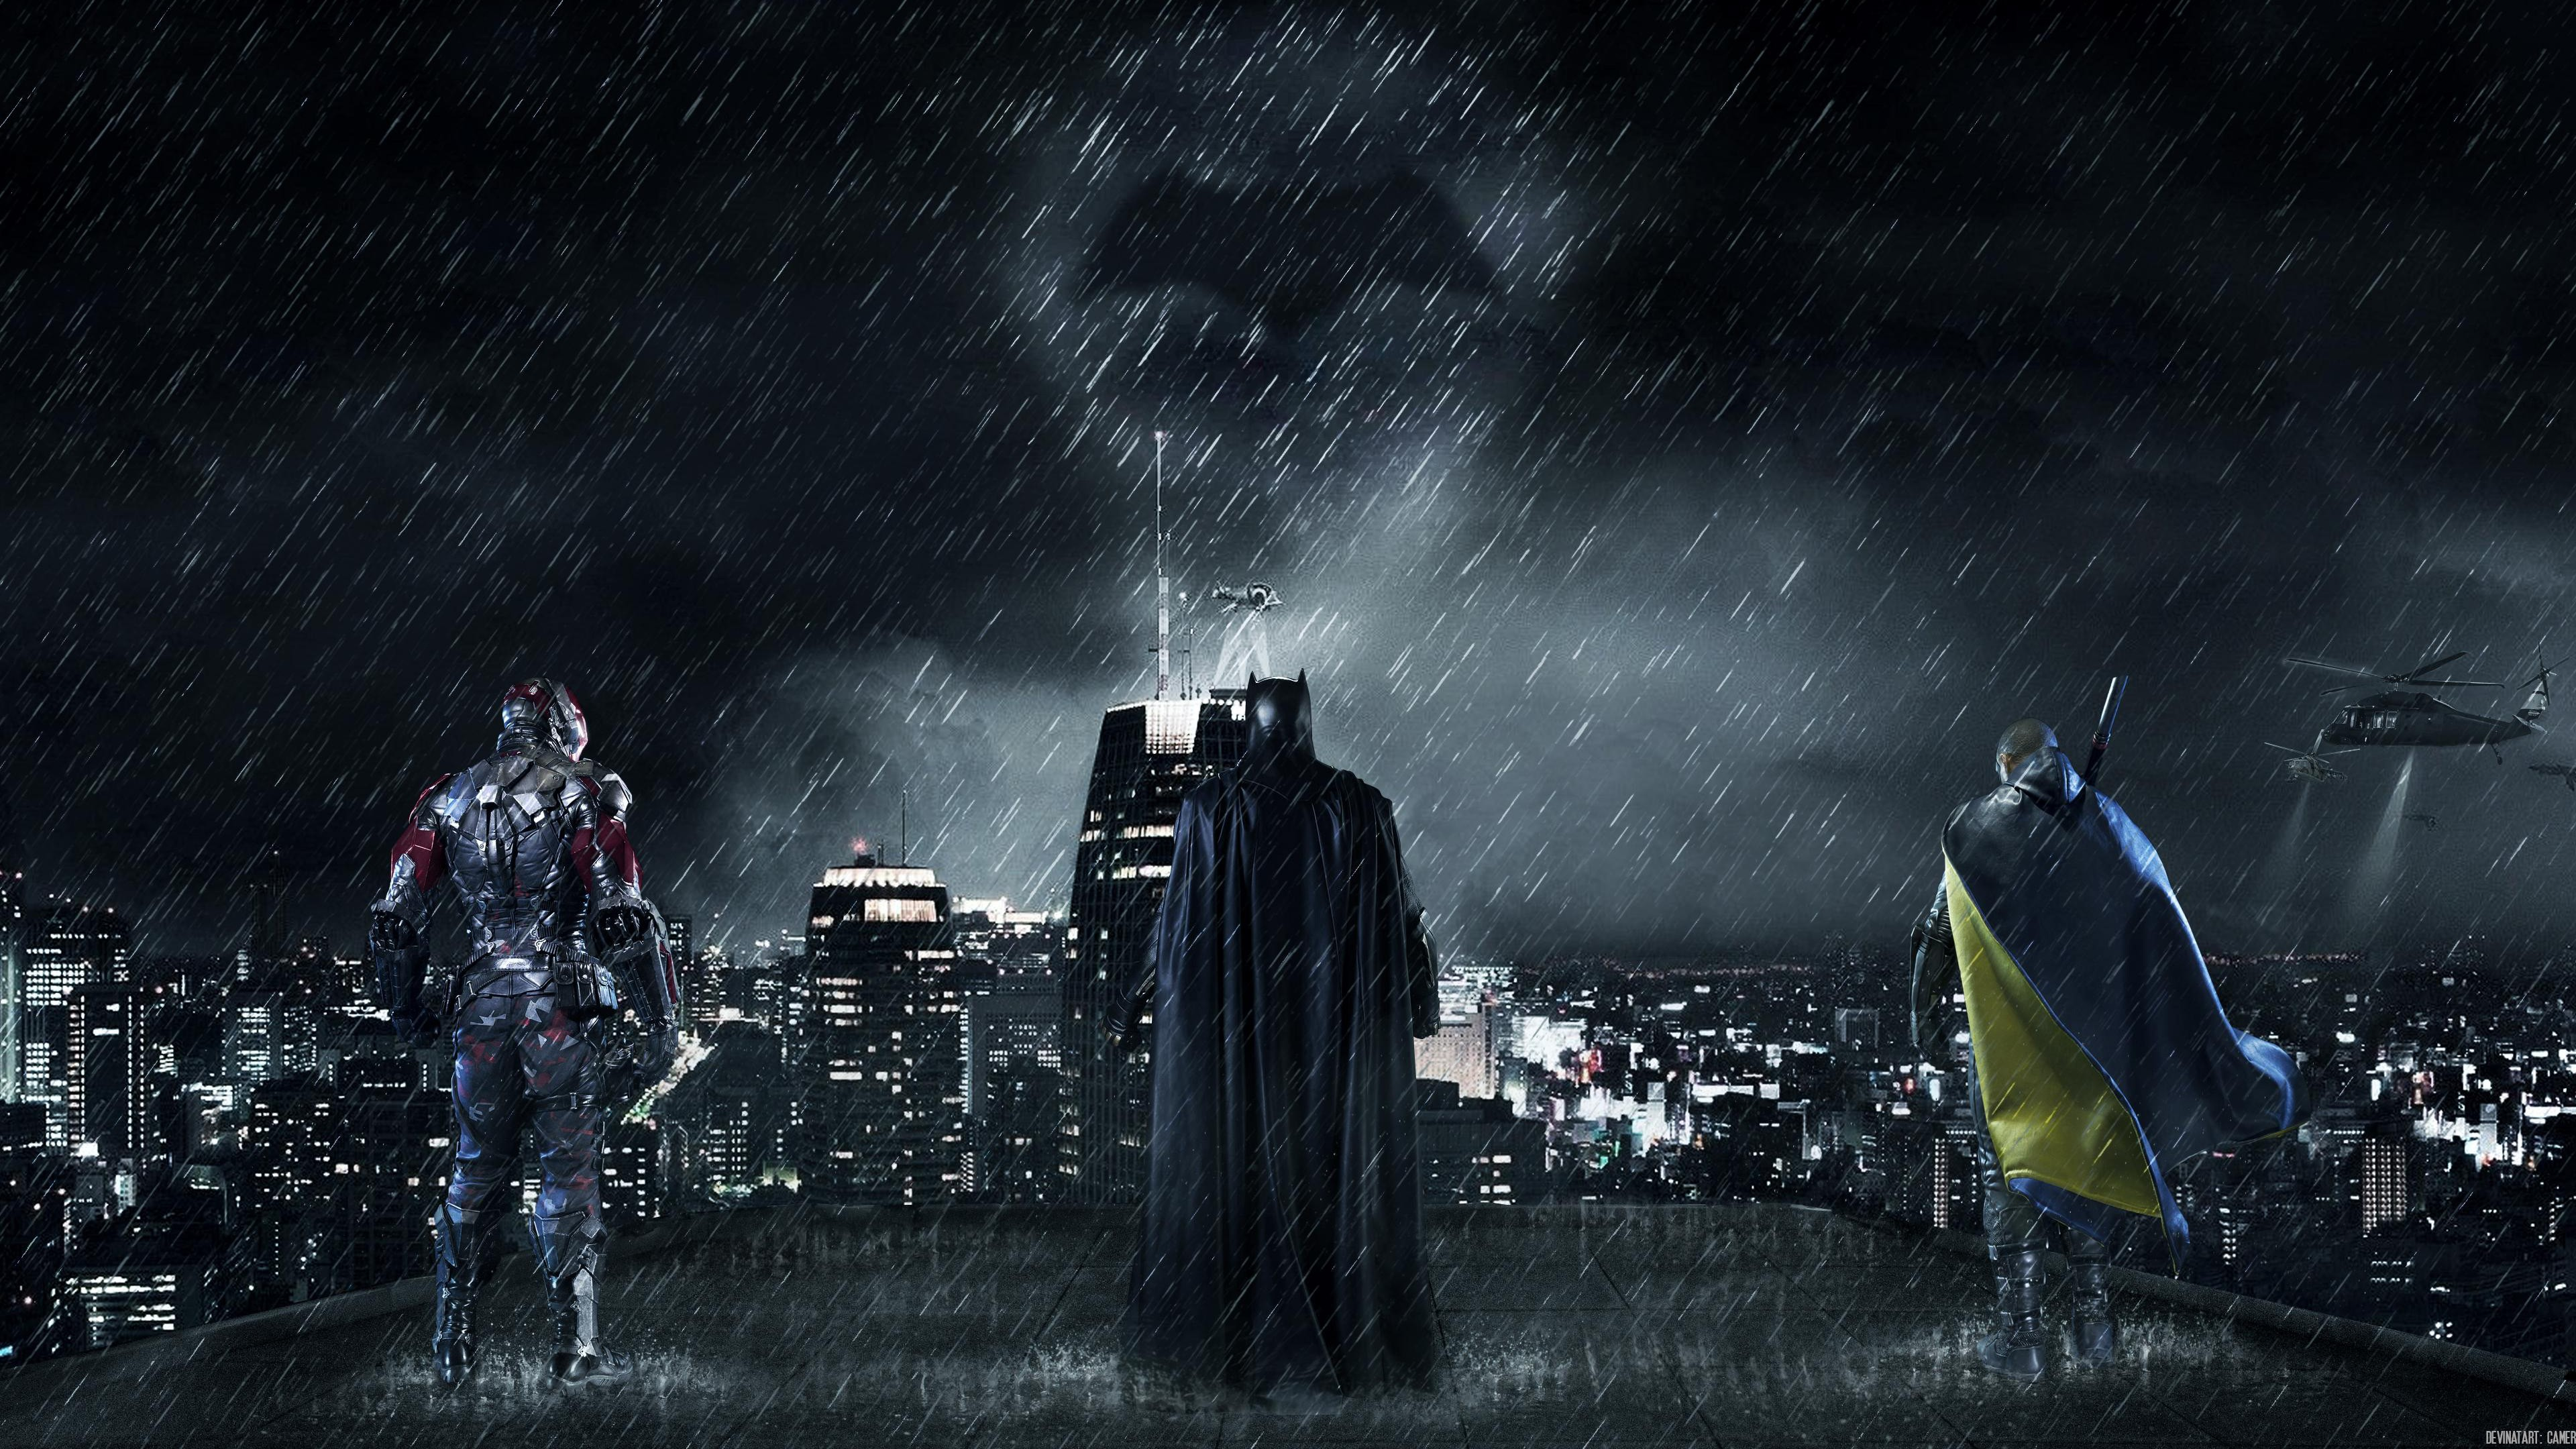 Gotham City Background 99 images in Collection Page 2 3840x2160